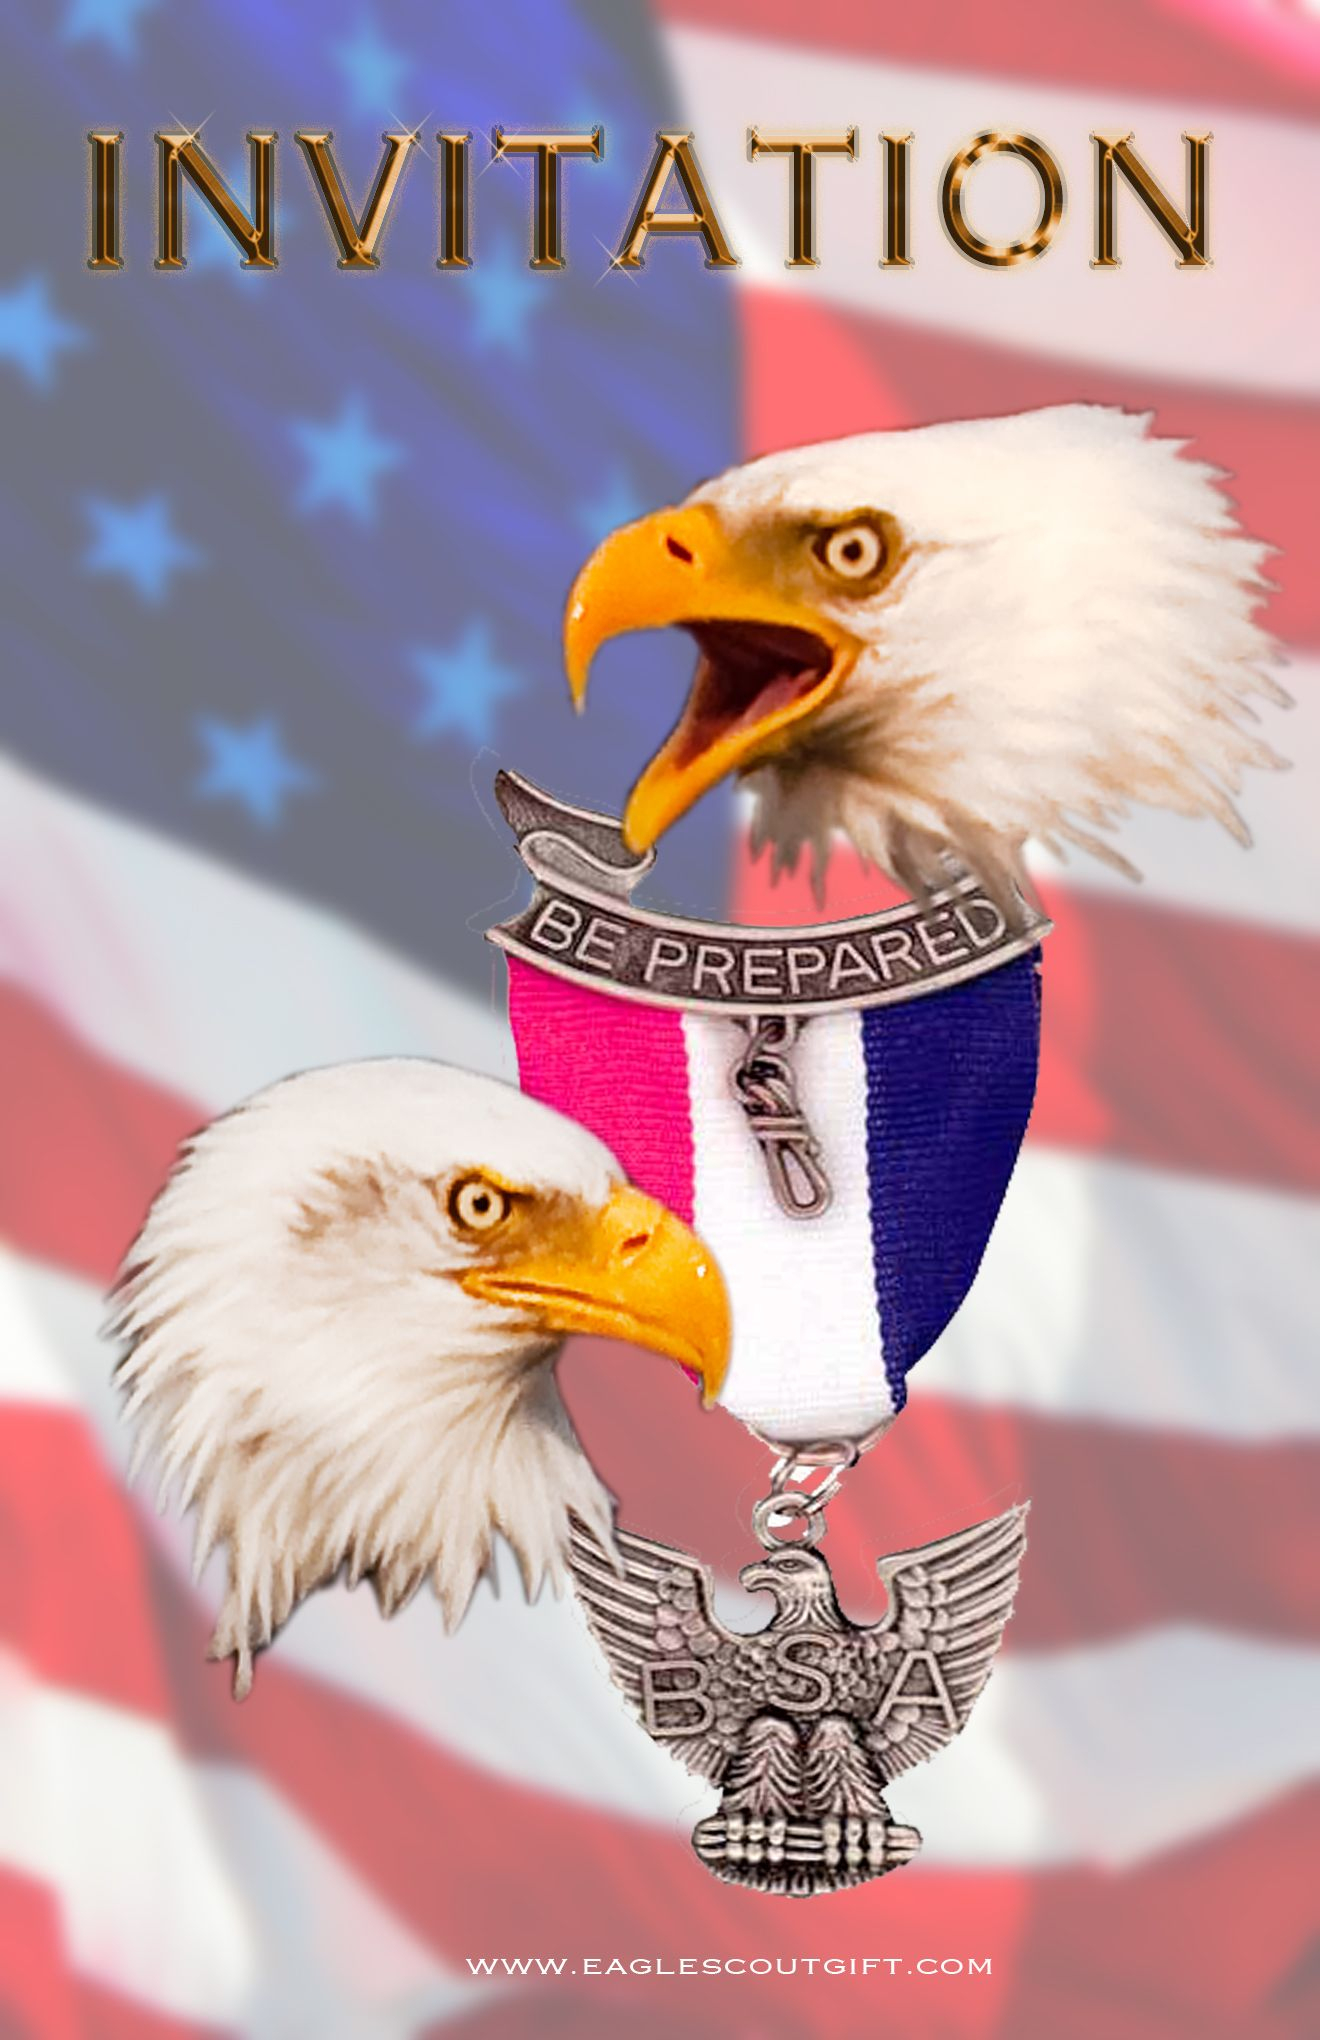 Eagle Scout Gift - Free Downloads, Invitation, Program And - Eagle Scout Cards Free Printable